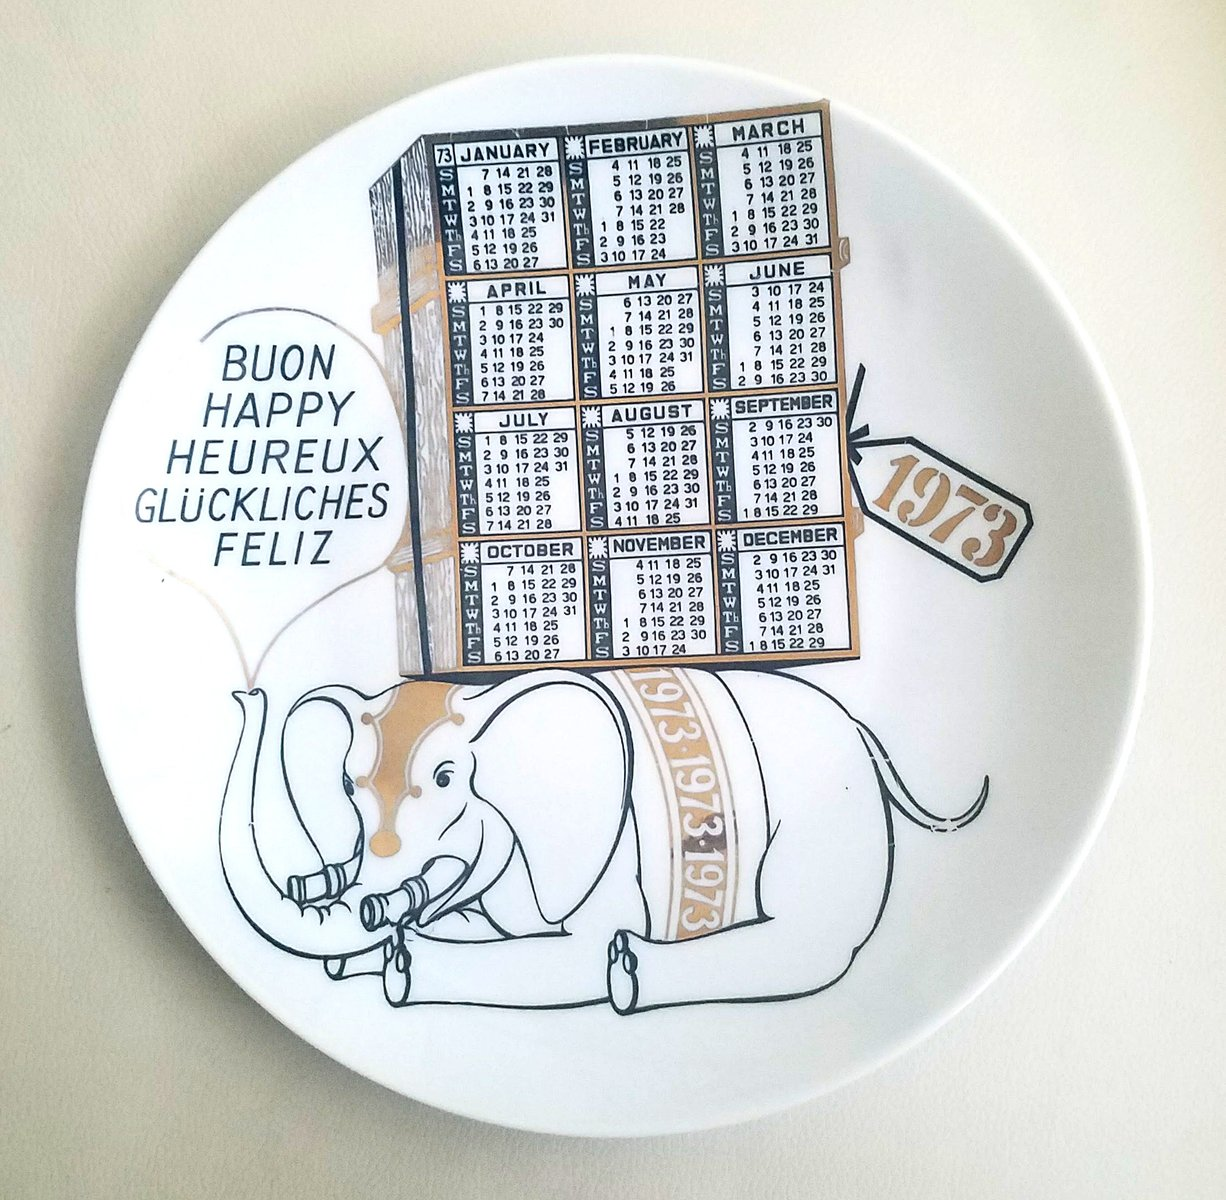 Year 1973 Porcelain Calendar Plate By Piero Fornasetti For Sale At